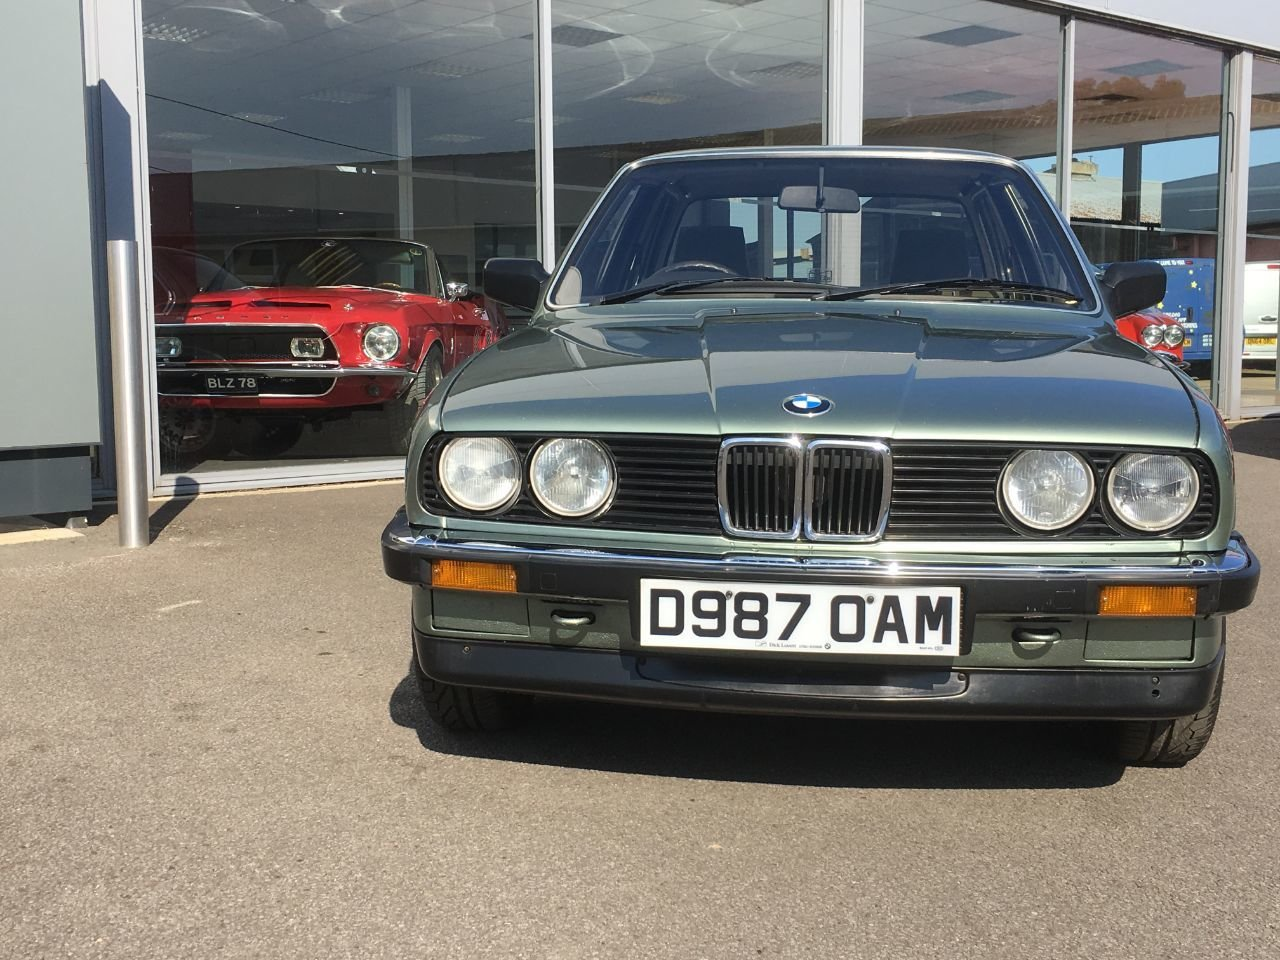 1986 BMW 318i E30 For Sale (picture 1 of 4)